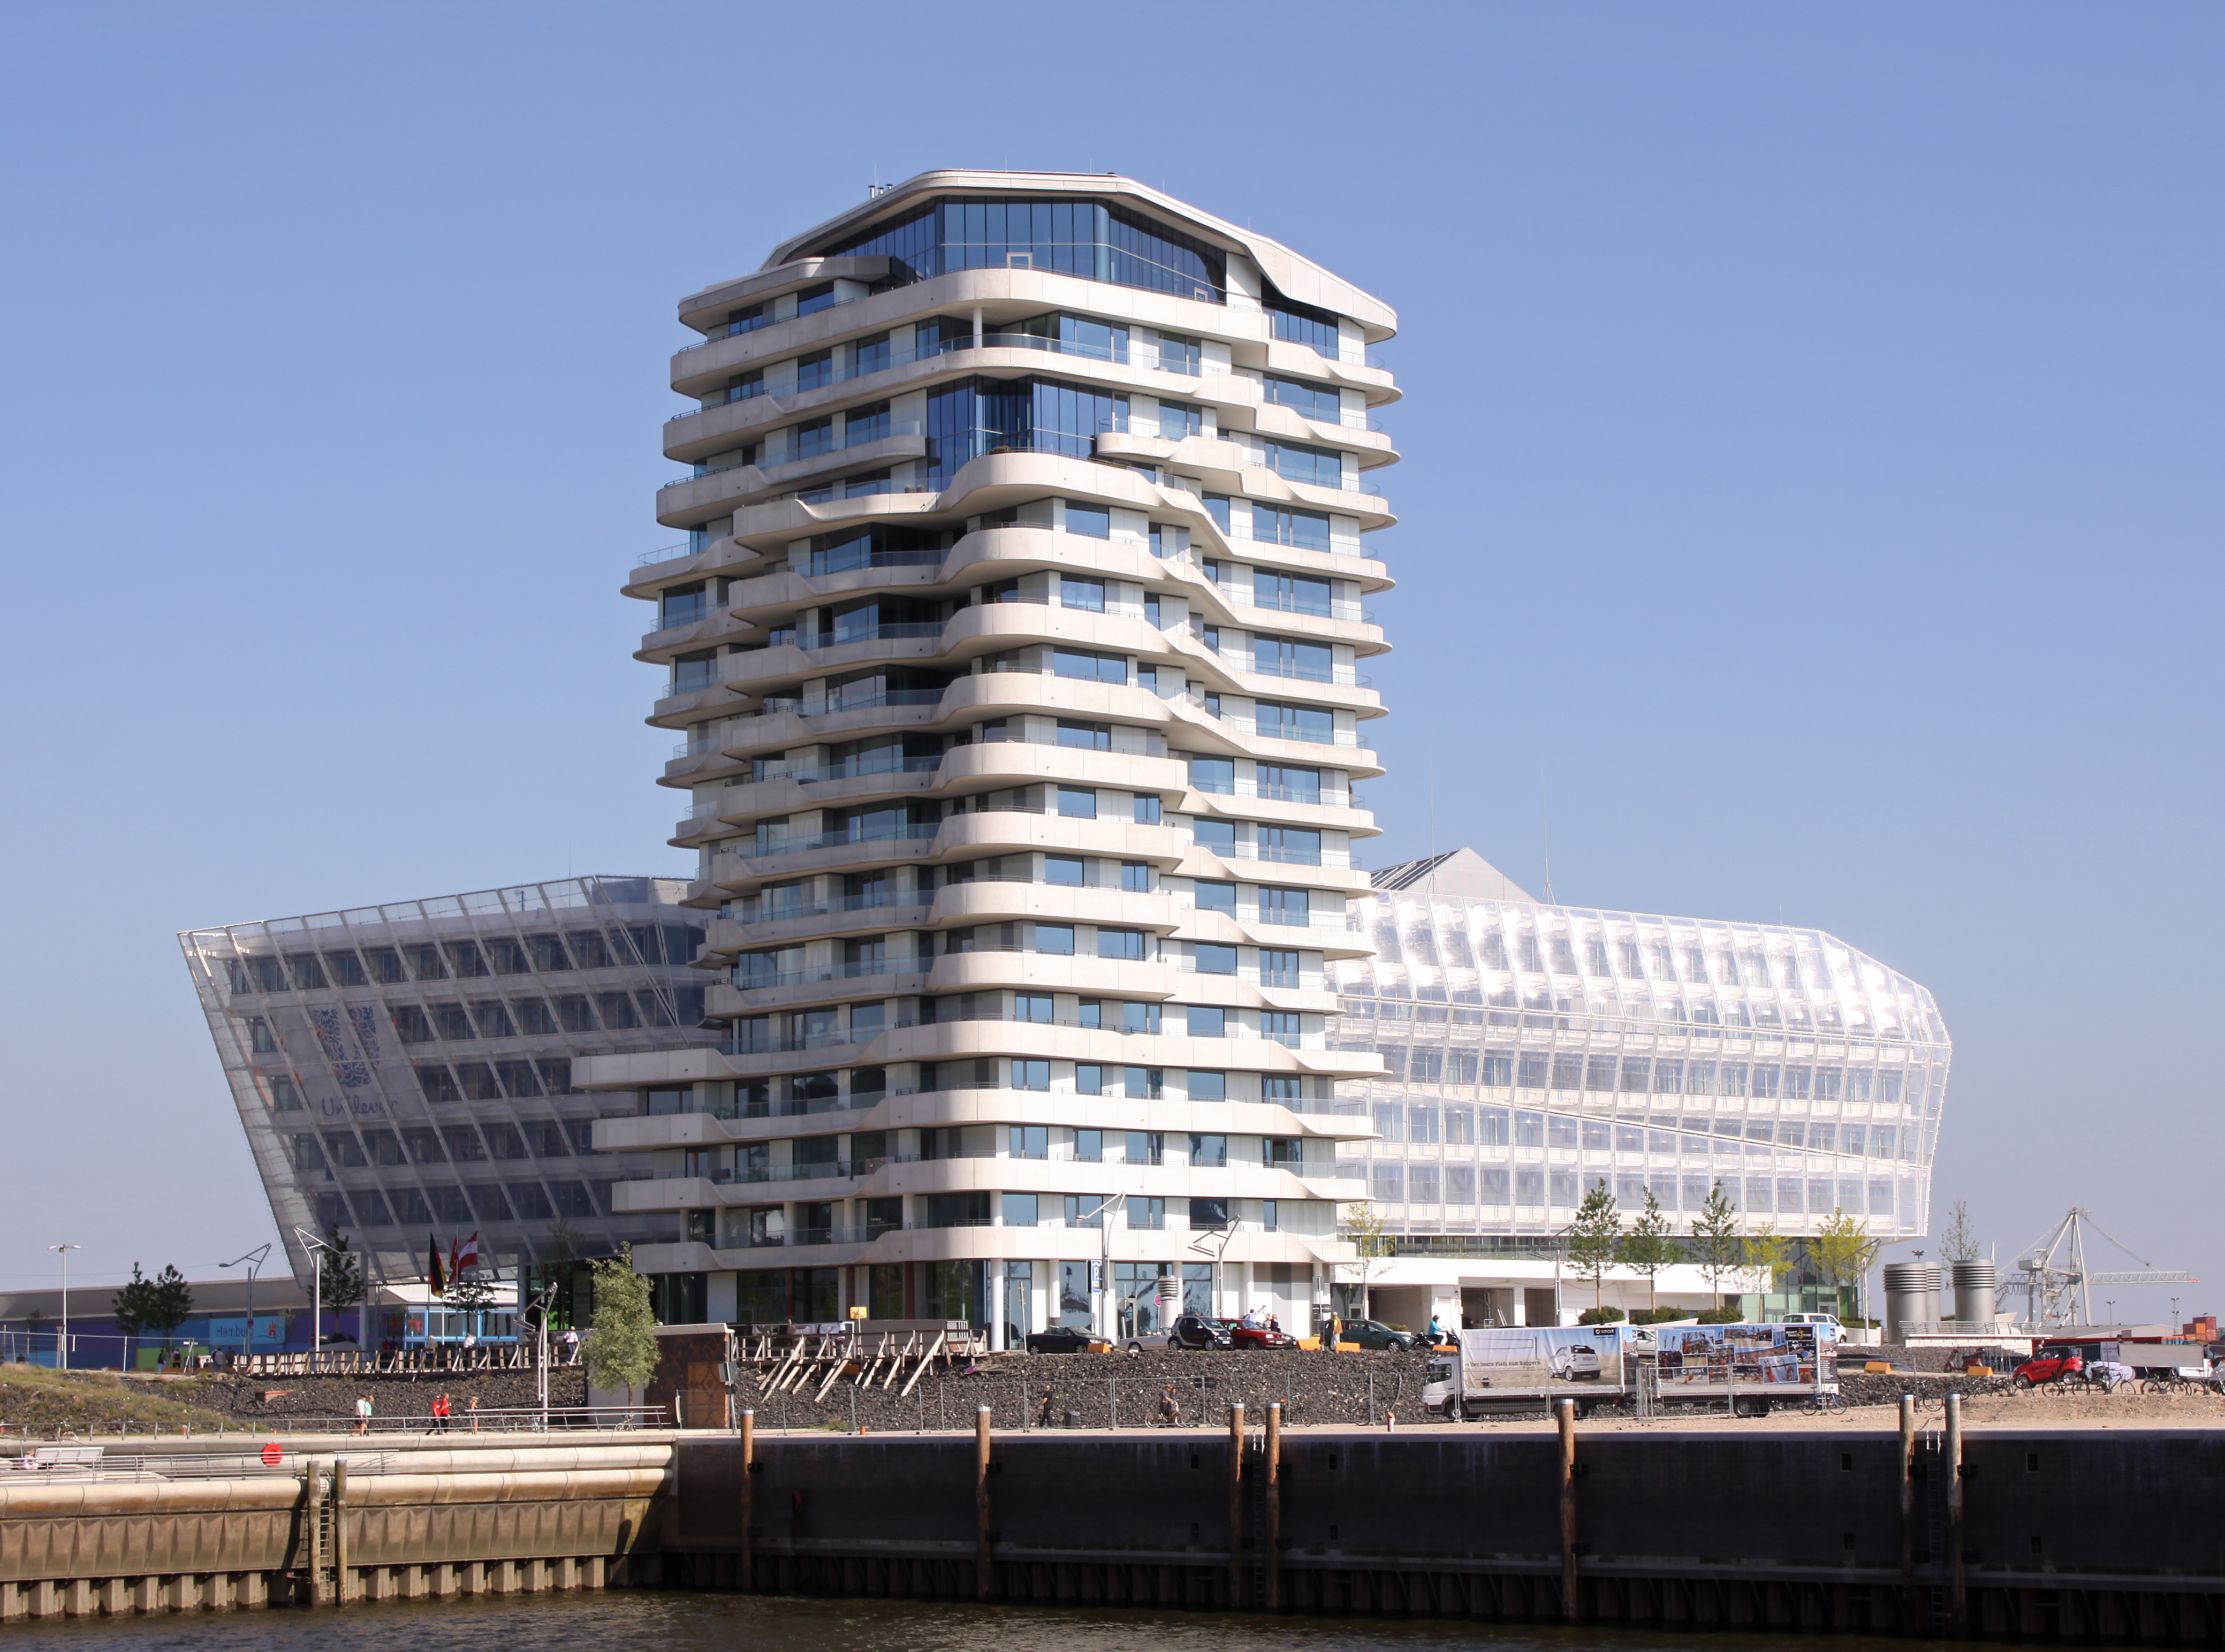 Marco Polo Tower File:marco-polo-tower.jpg - Wikimedia Commons